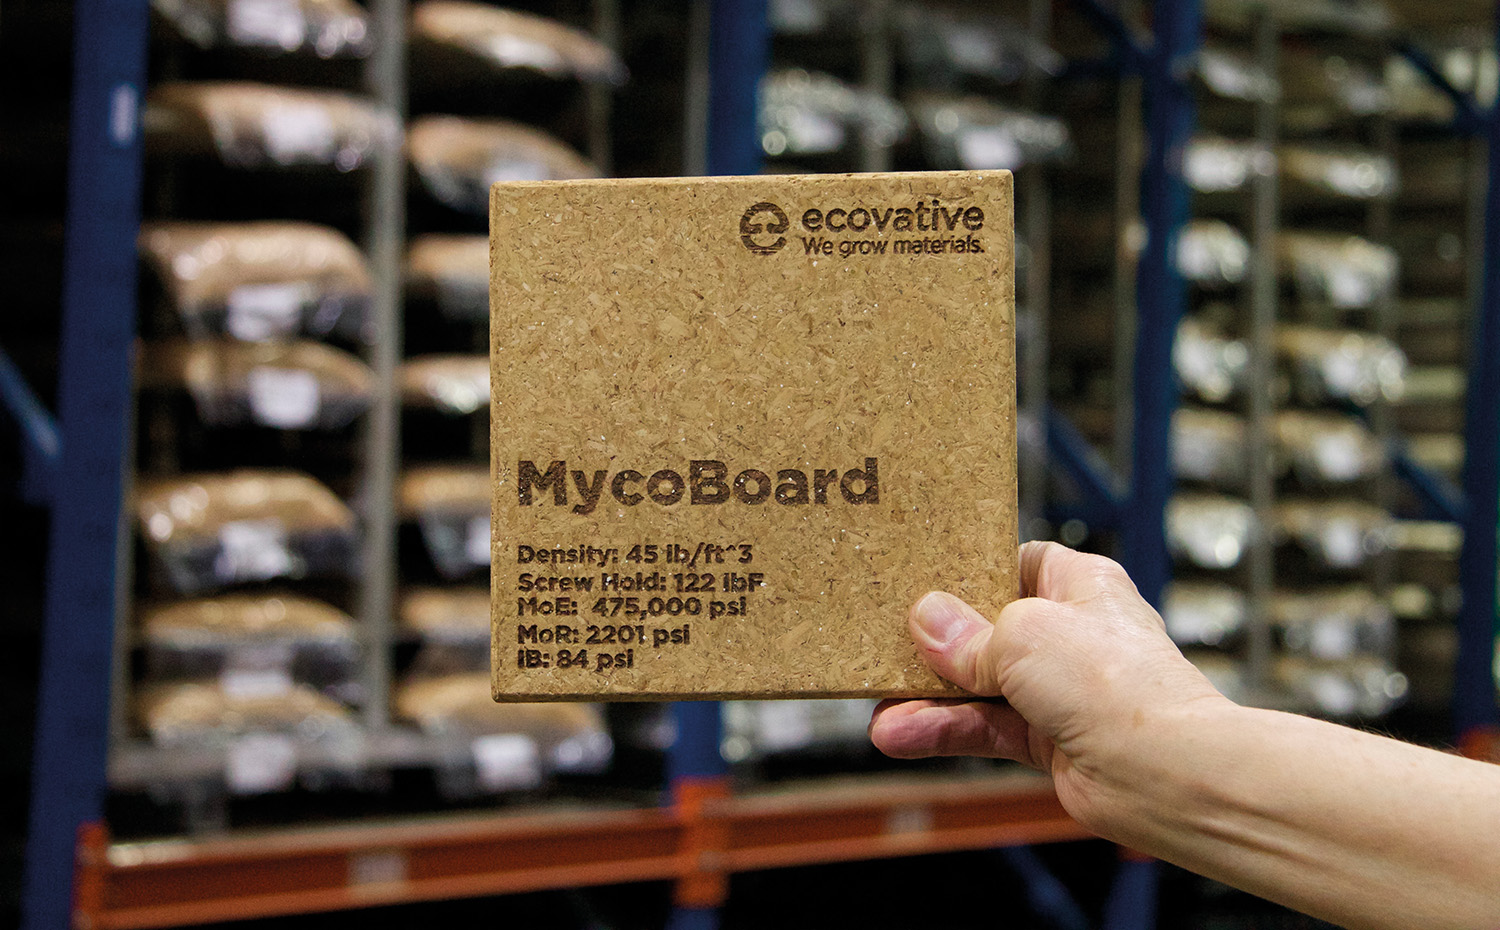 Ecovative-mycoboard. Tablero de material vegetal fermentado, de Ecovative